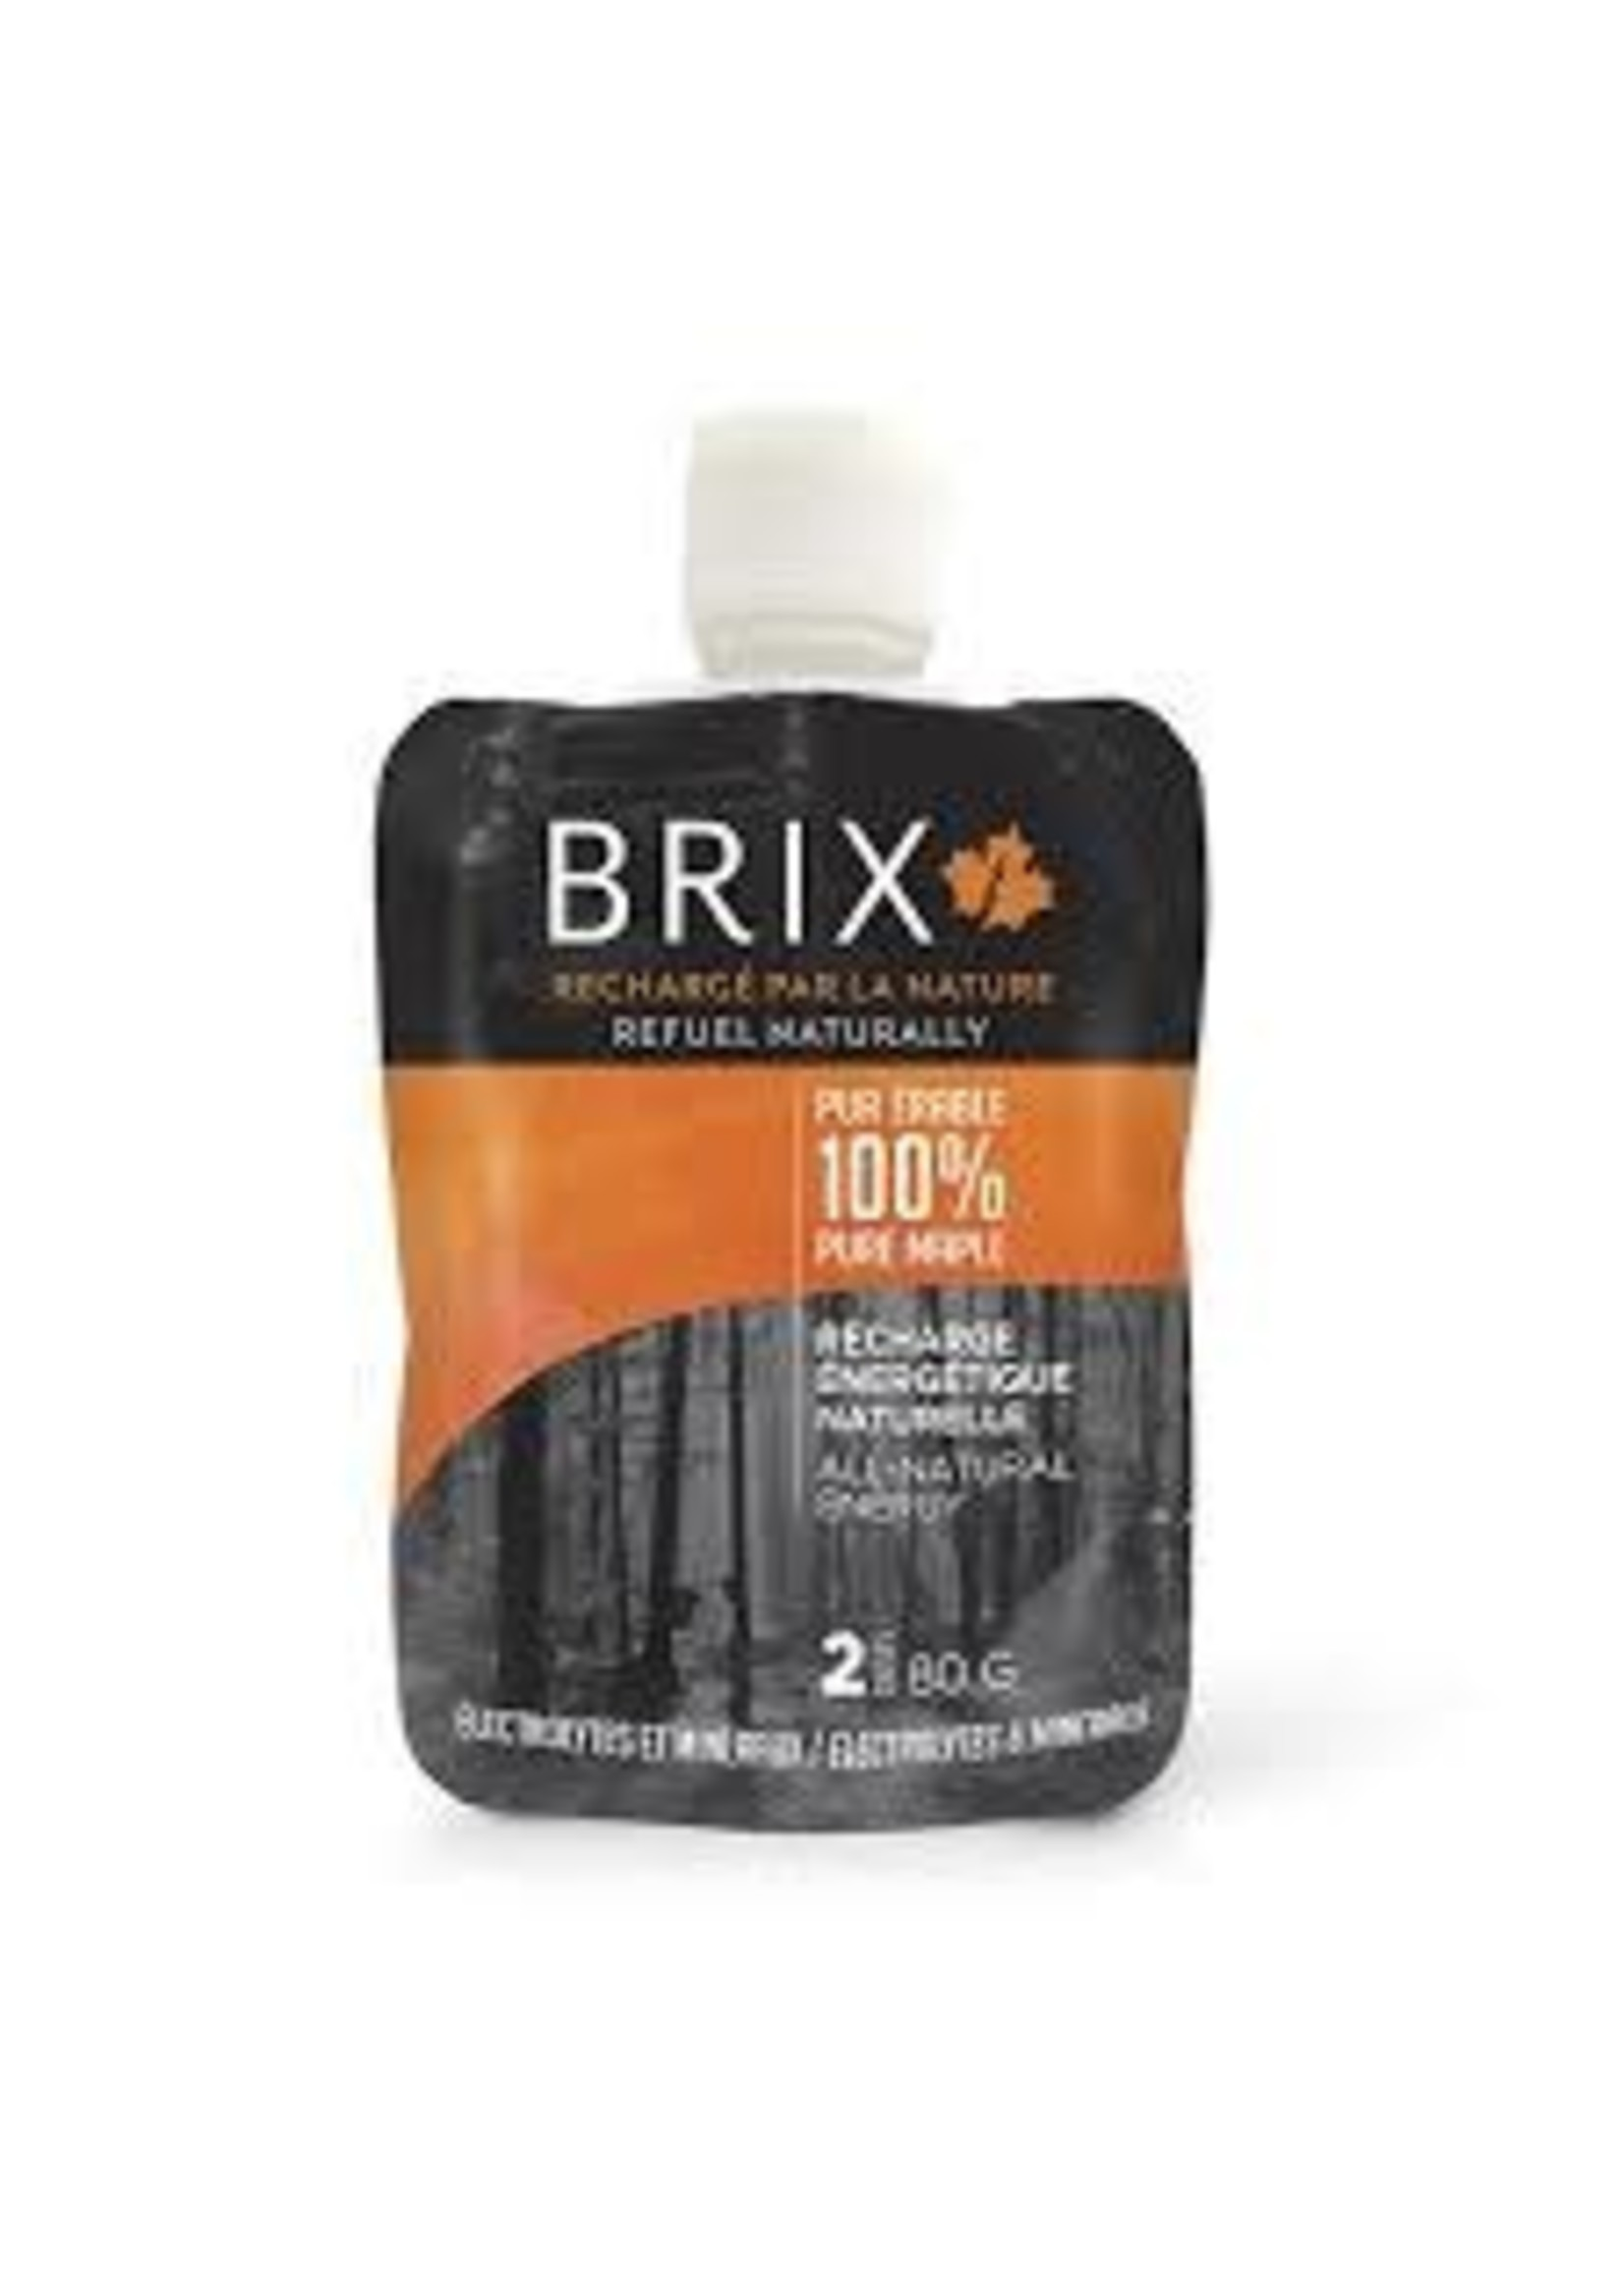 BRIX BRIX Syrop D'Érable, 80g single